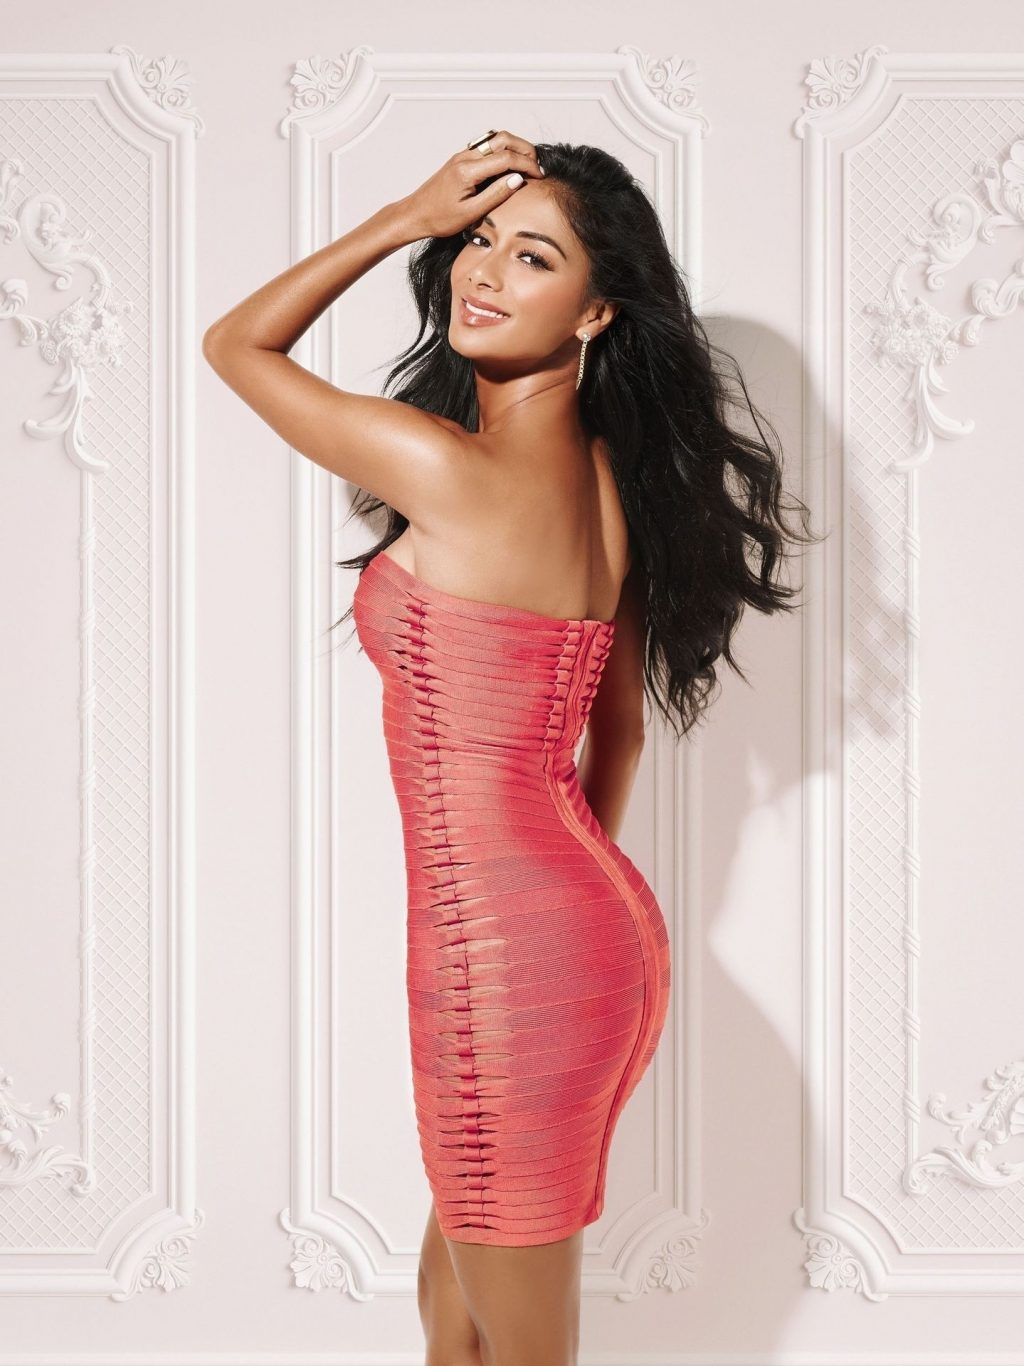 Nicole Scherzinger is Pictured During a Sexy Studio Shoot Out in Los Angeles (4 Photos)